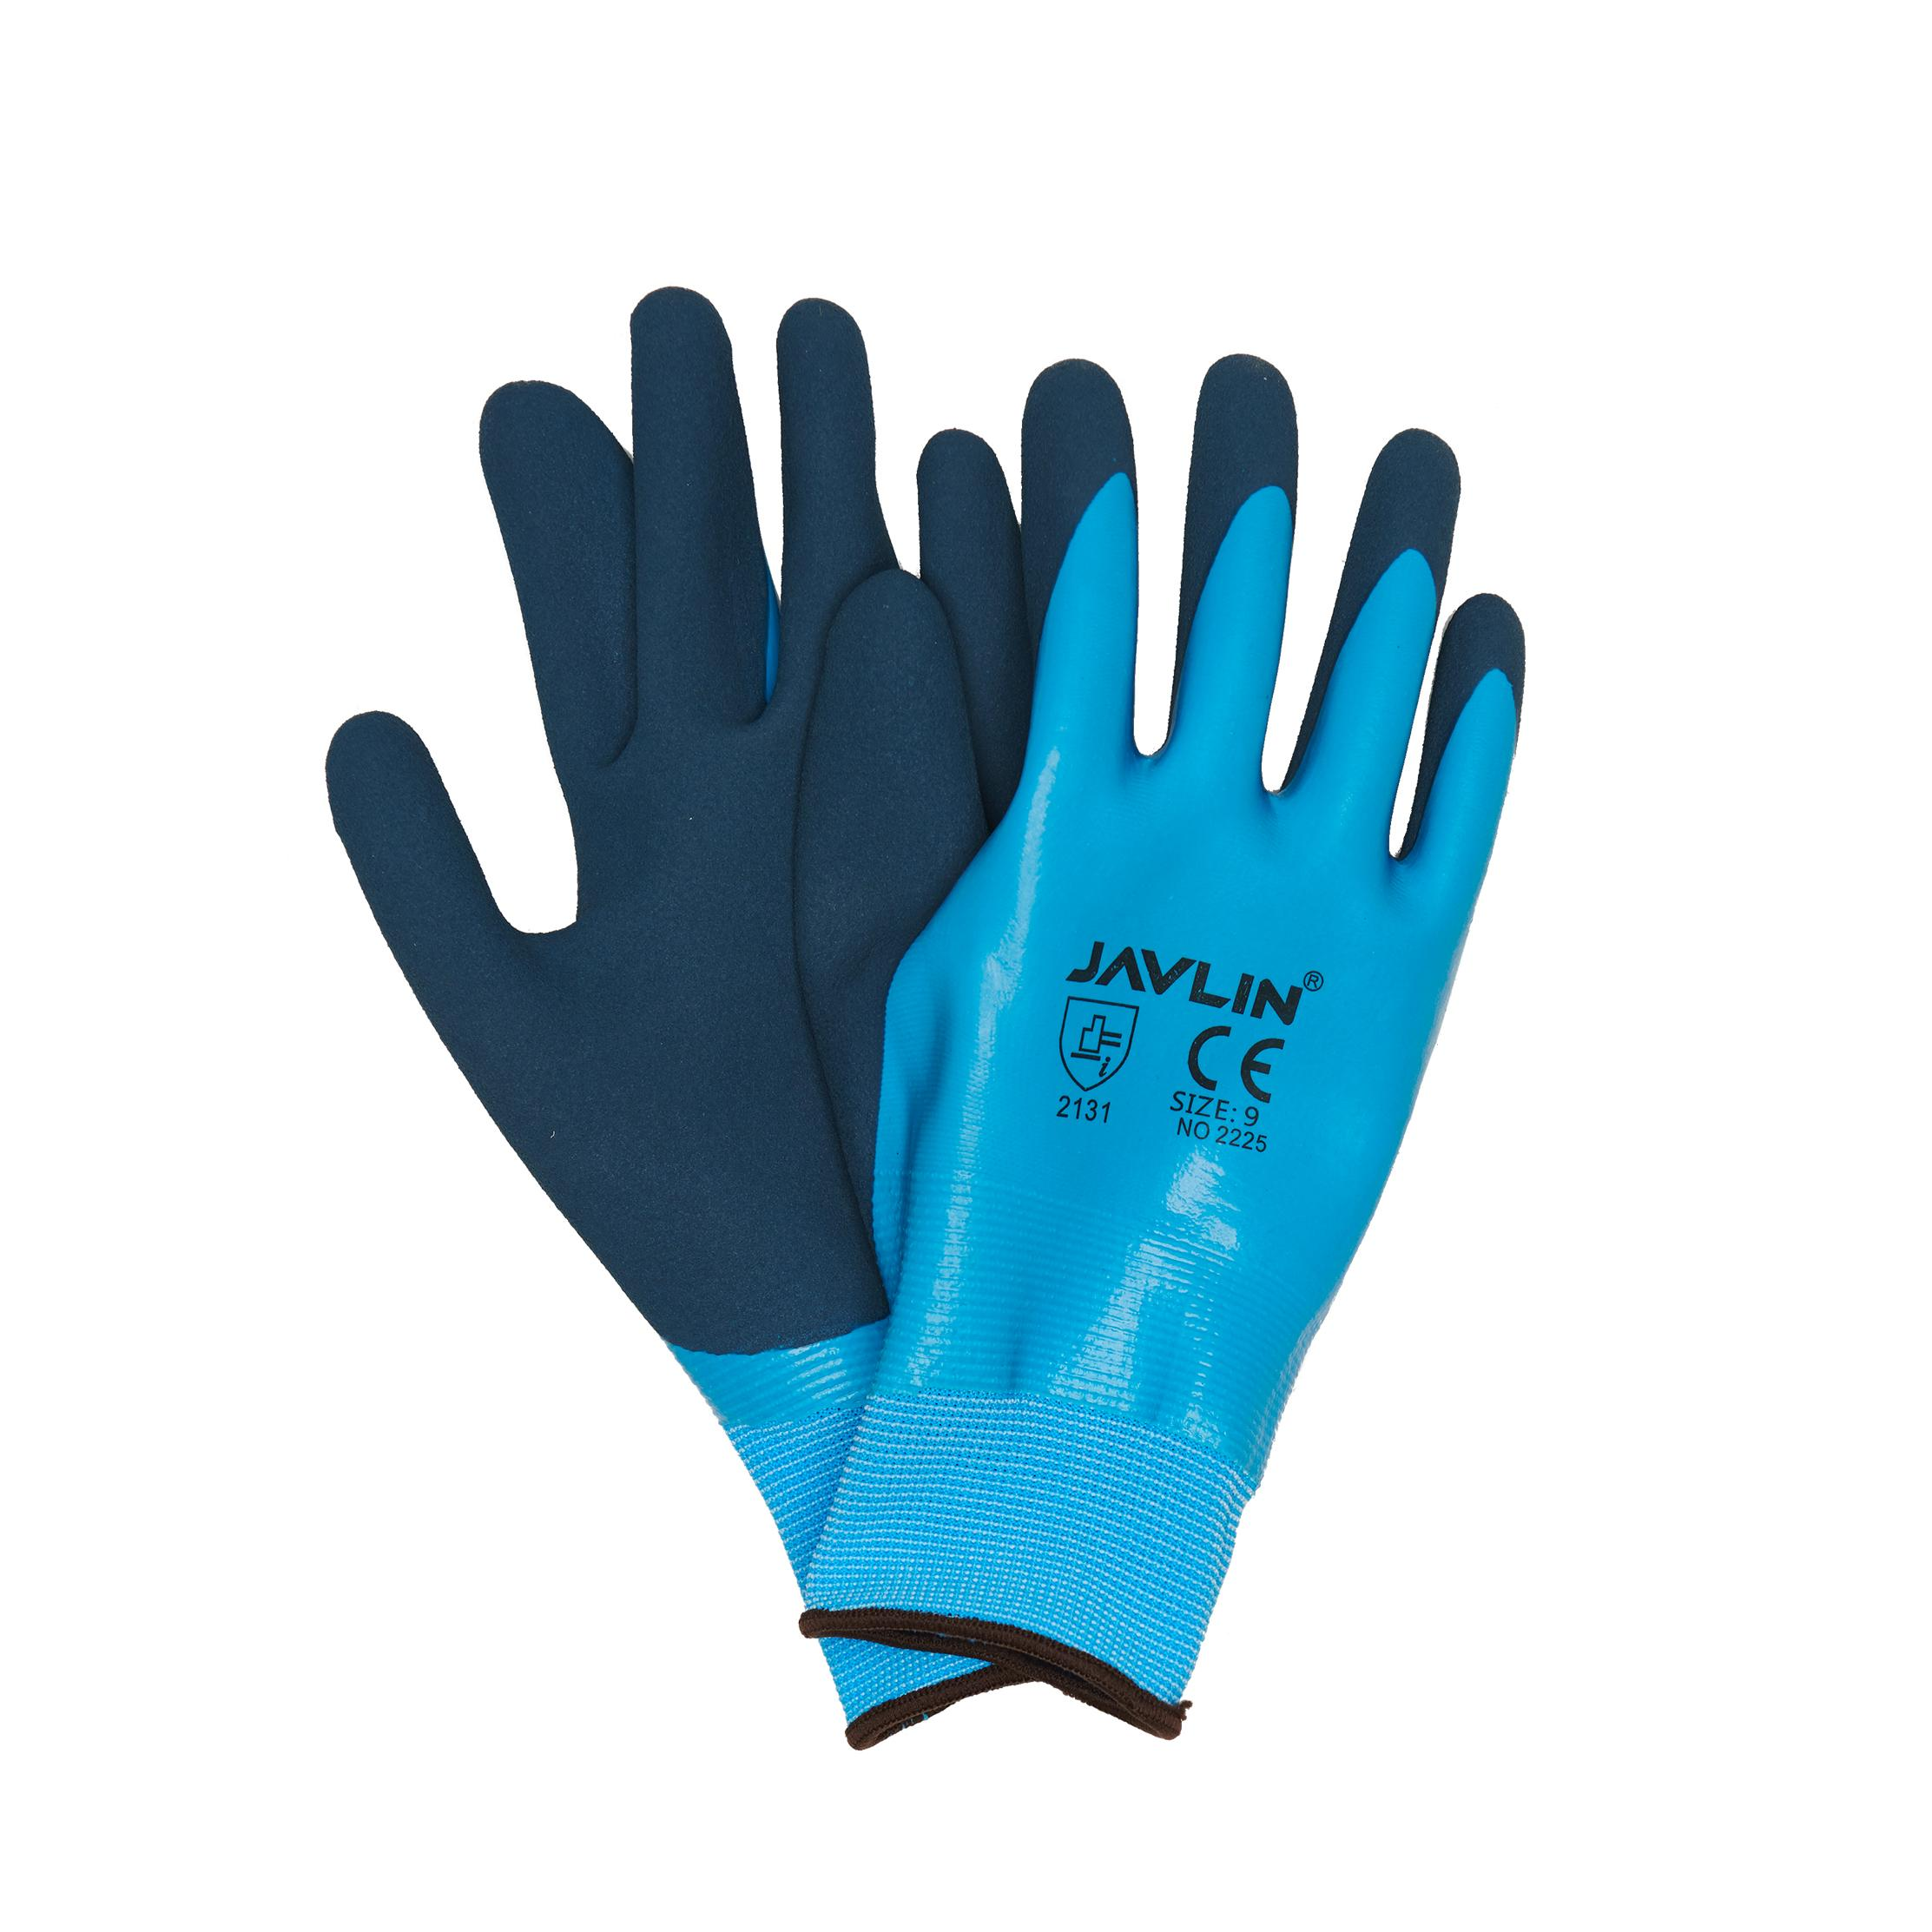 15g Seamless Liner With Double Coated Foam Latex Fully Waterproof  Sizes 7-11